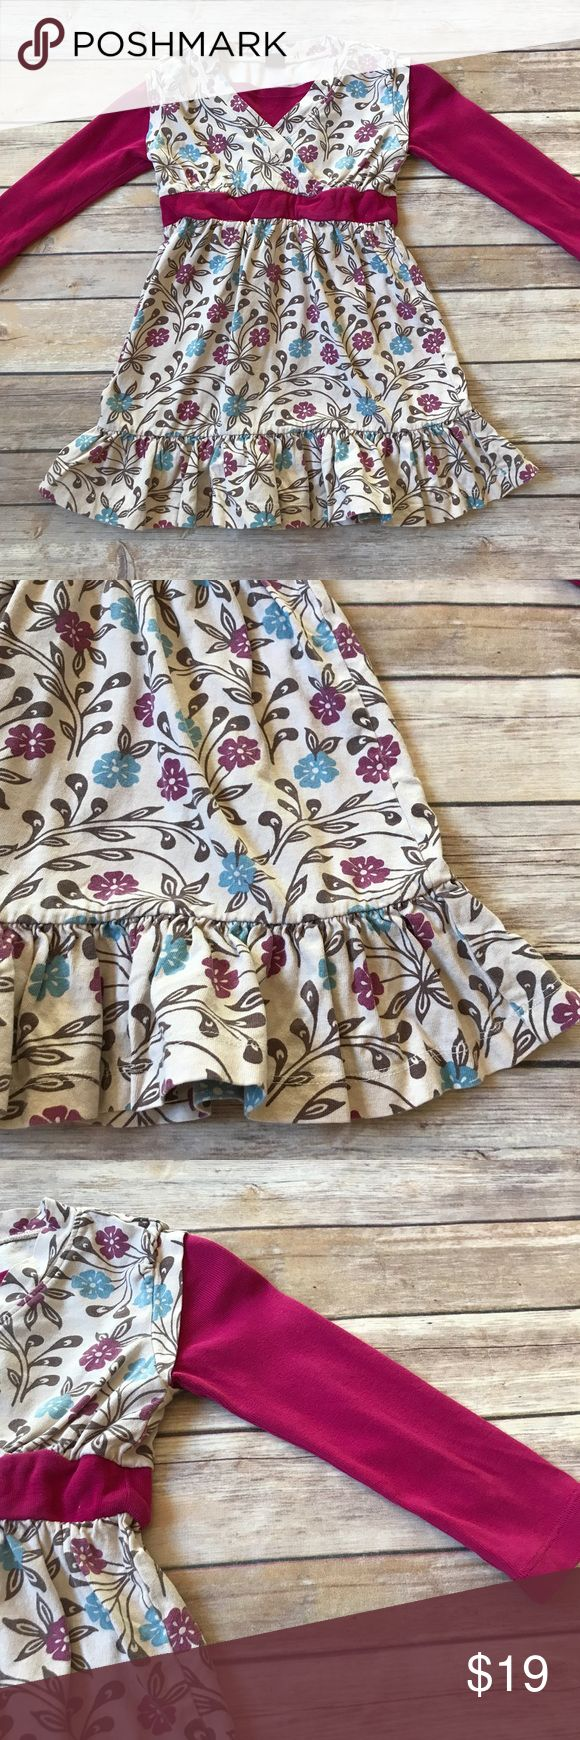 Tea Collection Size 4 Tea Collection long sleeve floral print dress. Crossover chest. Beautiful neutral colors with magenta trim and sleeves. 100% cotton. No stains. Very good condition. Typical light fading for this brand. Tea Collection Dresses